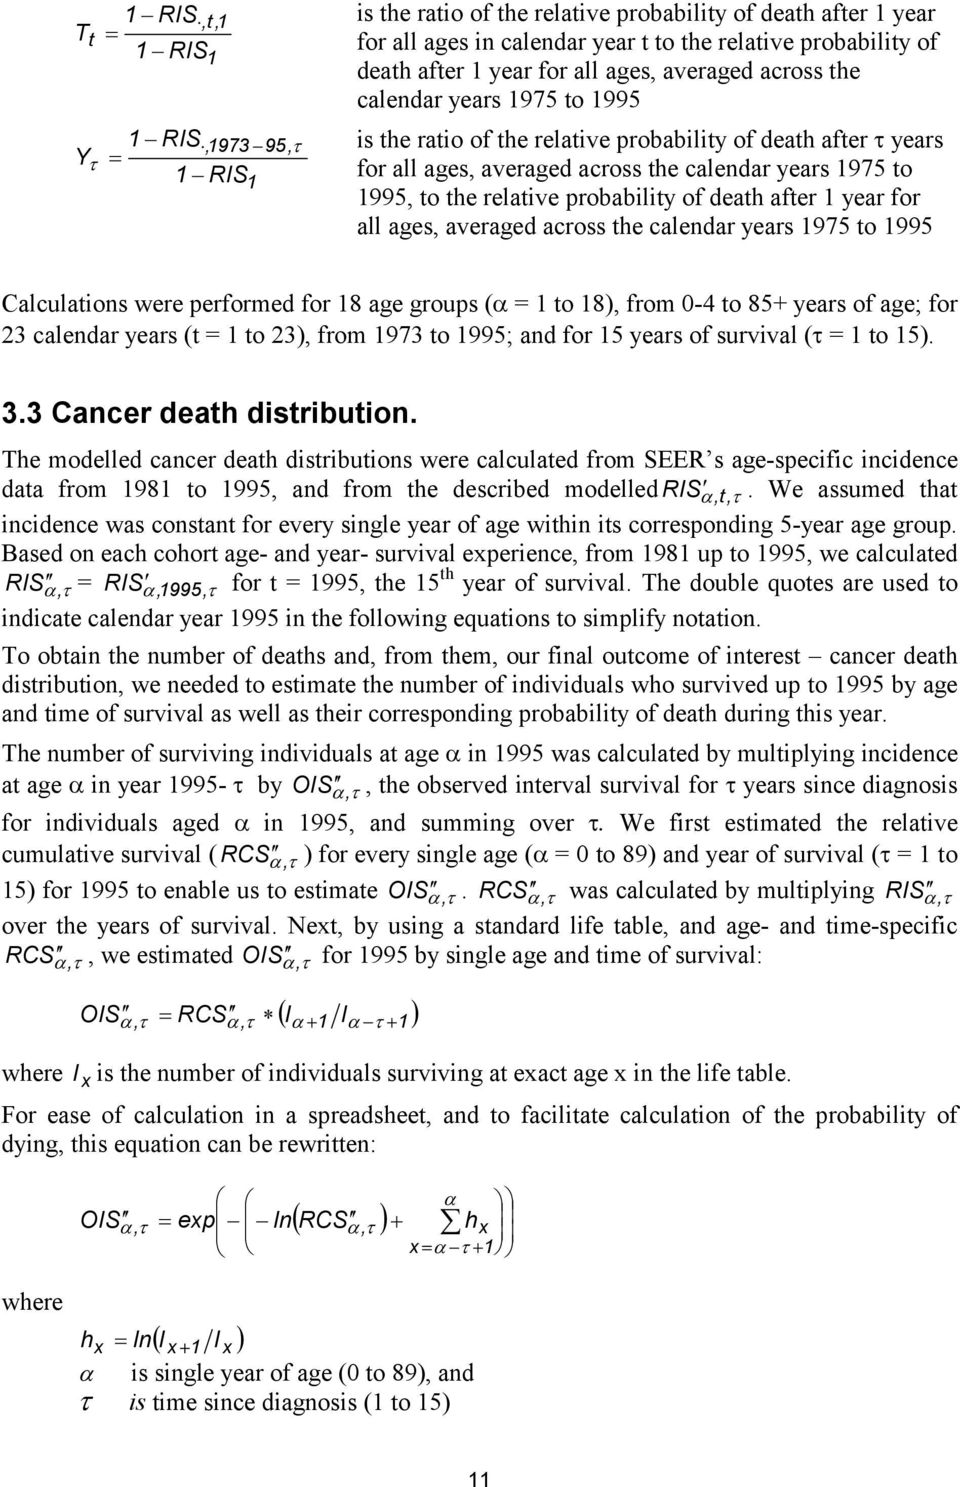 probability of death after 1 year for all ages, averaged across the calendar years 1975 to 1995 Calculations were performed for 18 age groups ( = 1 to 18), from 0-4 to 85+ years of age; for 23